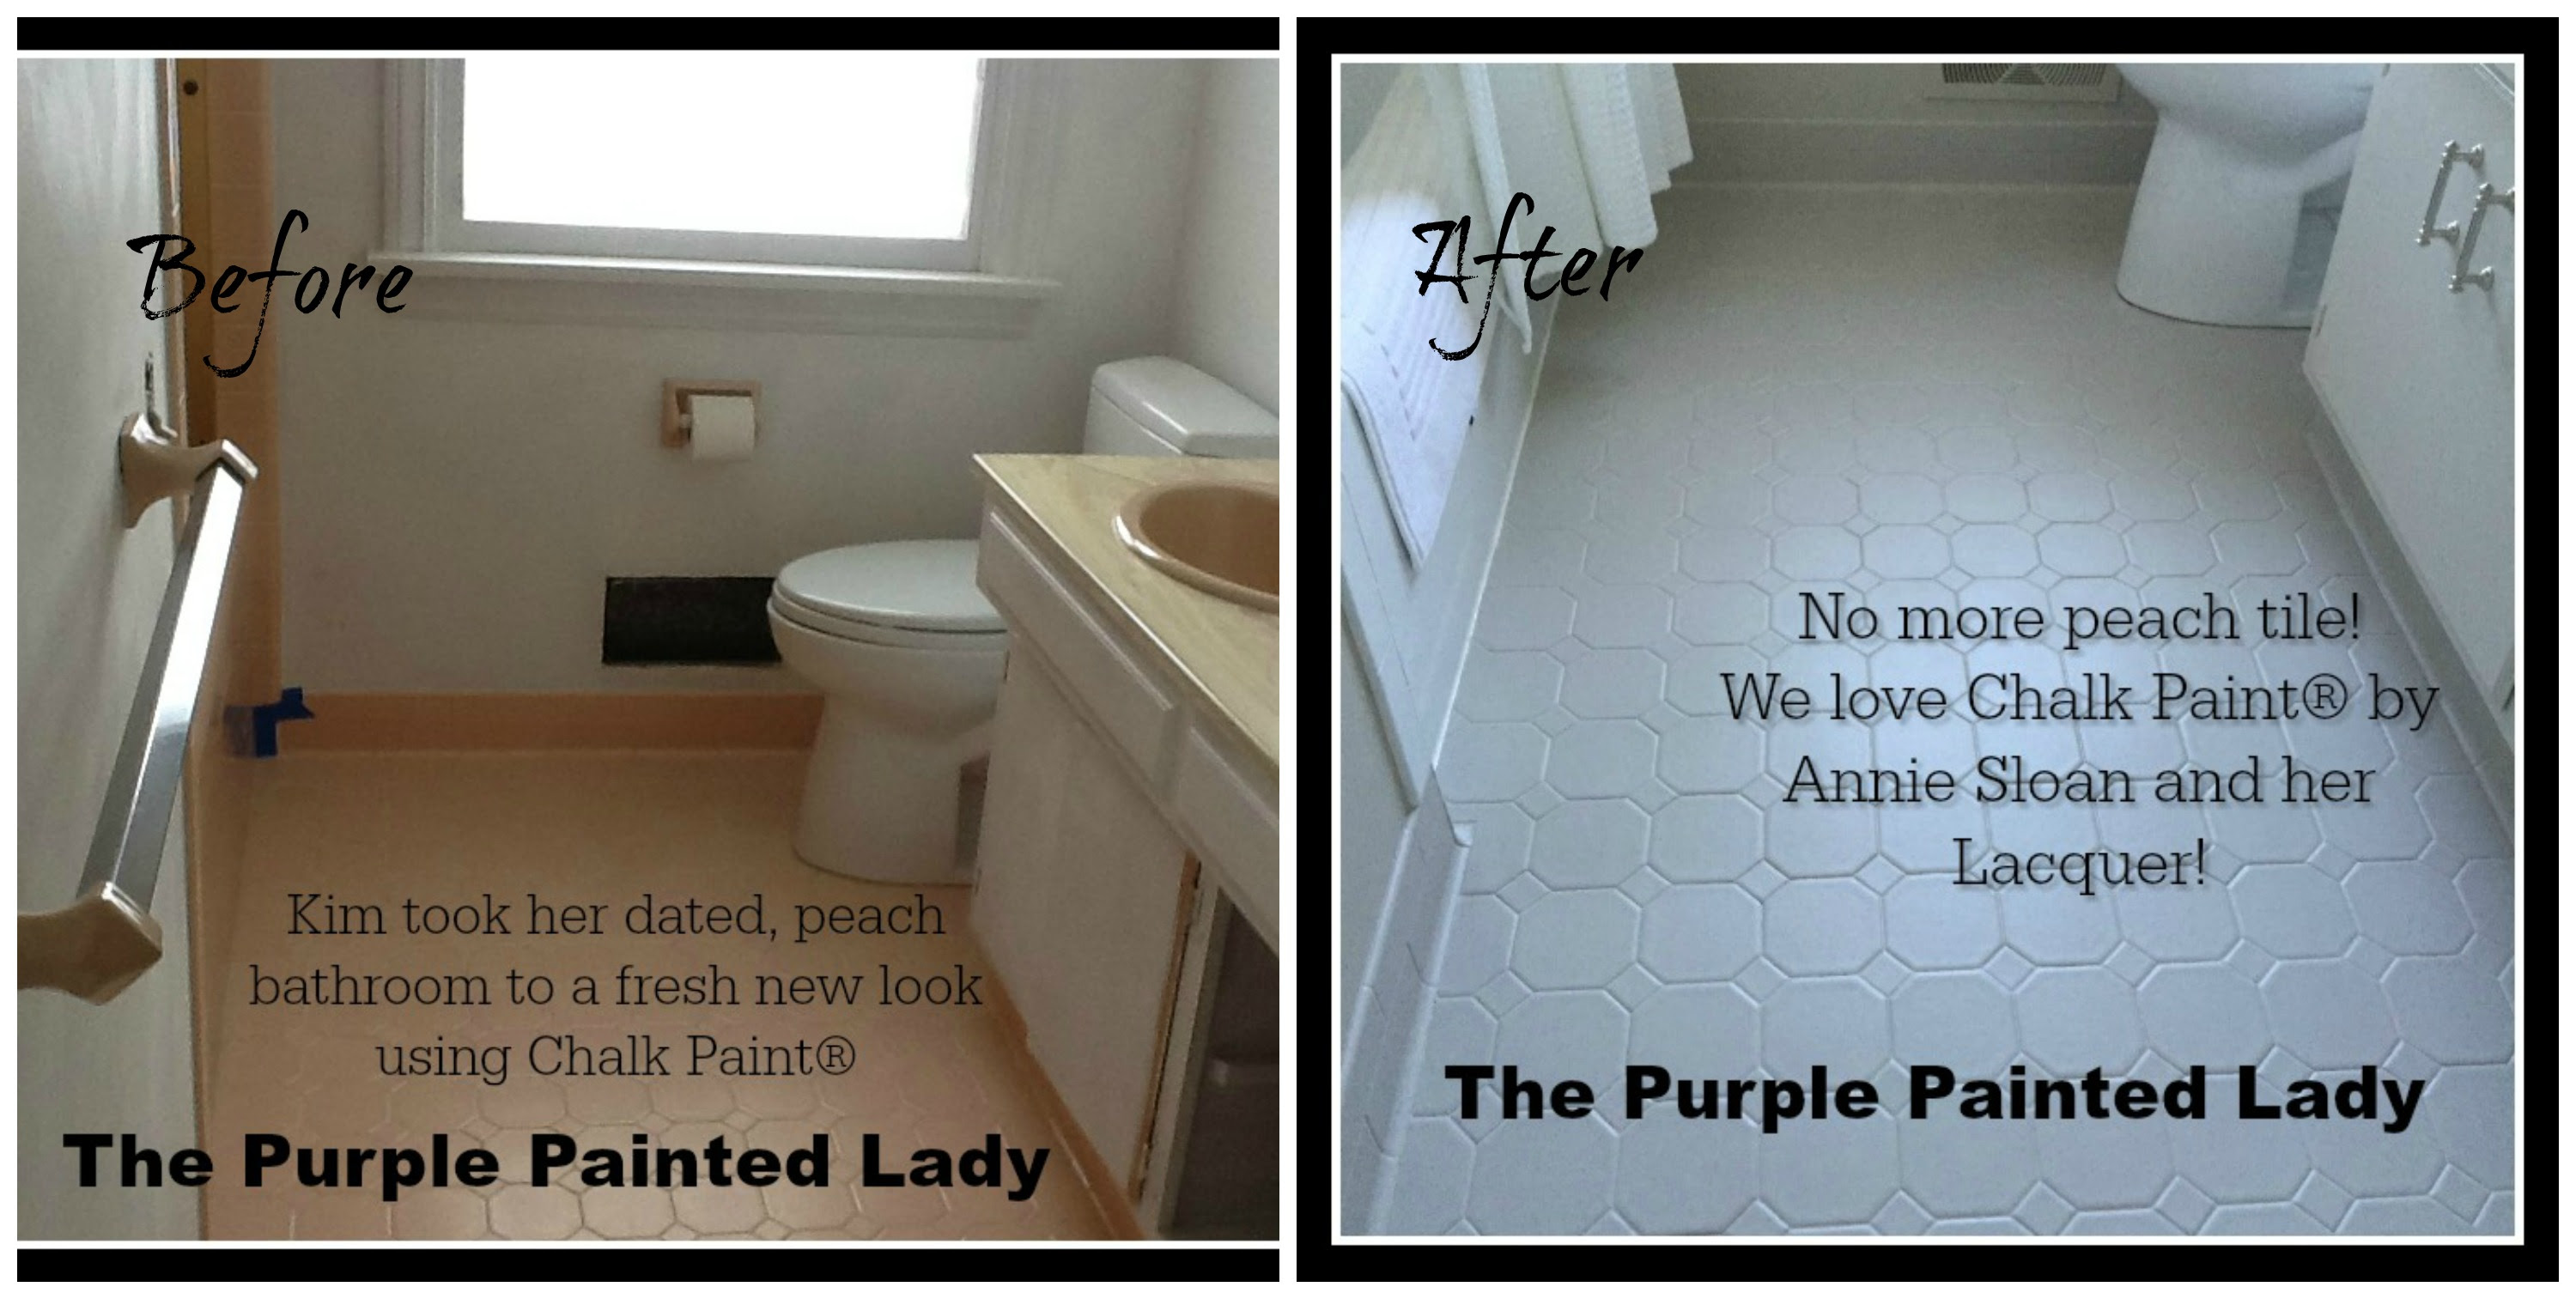 Painting Tile In The Bathroom With Chalk Paint The Purple Painted Lady